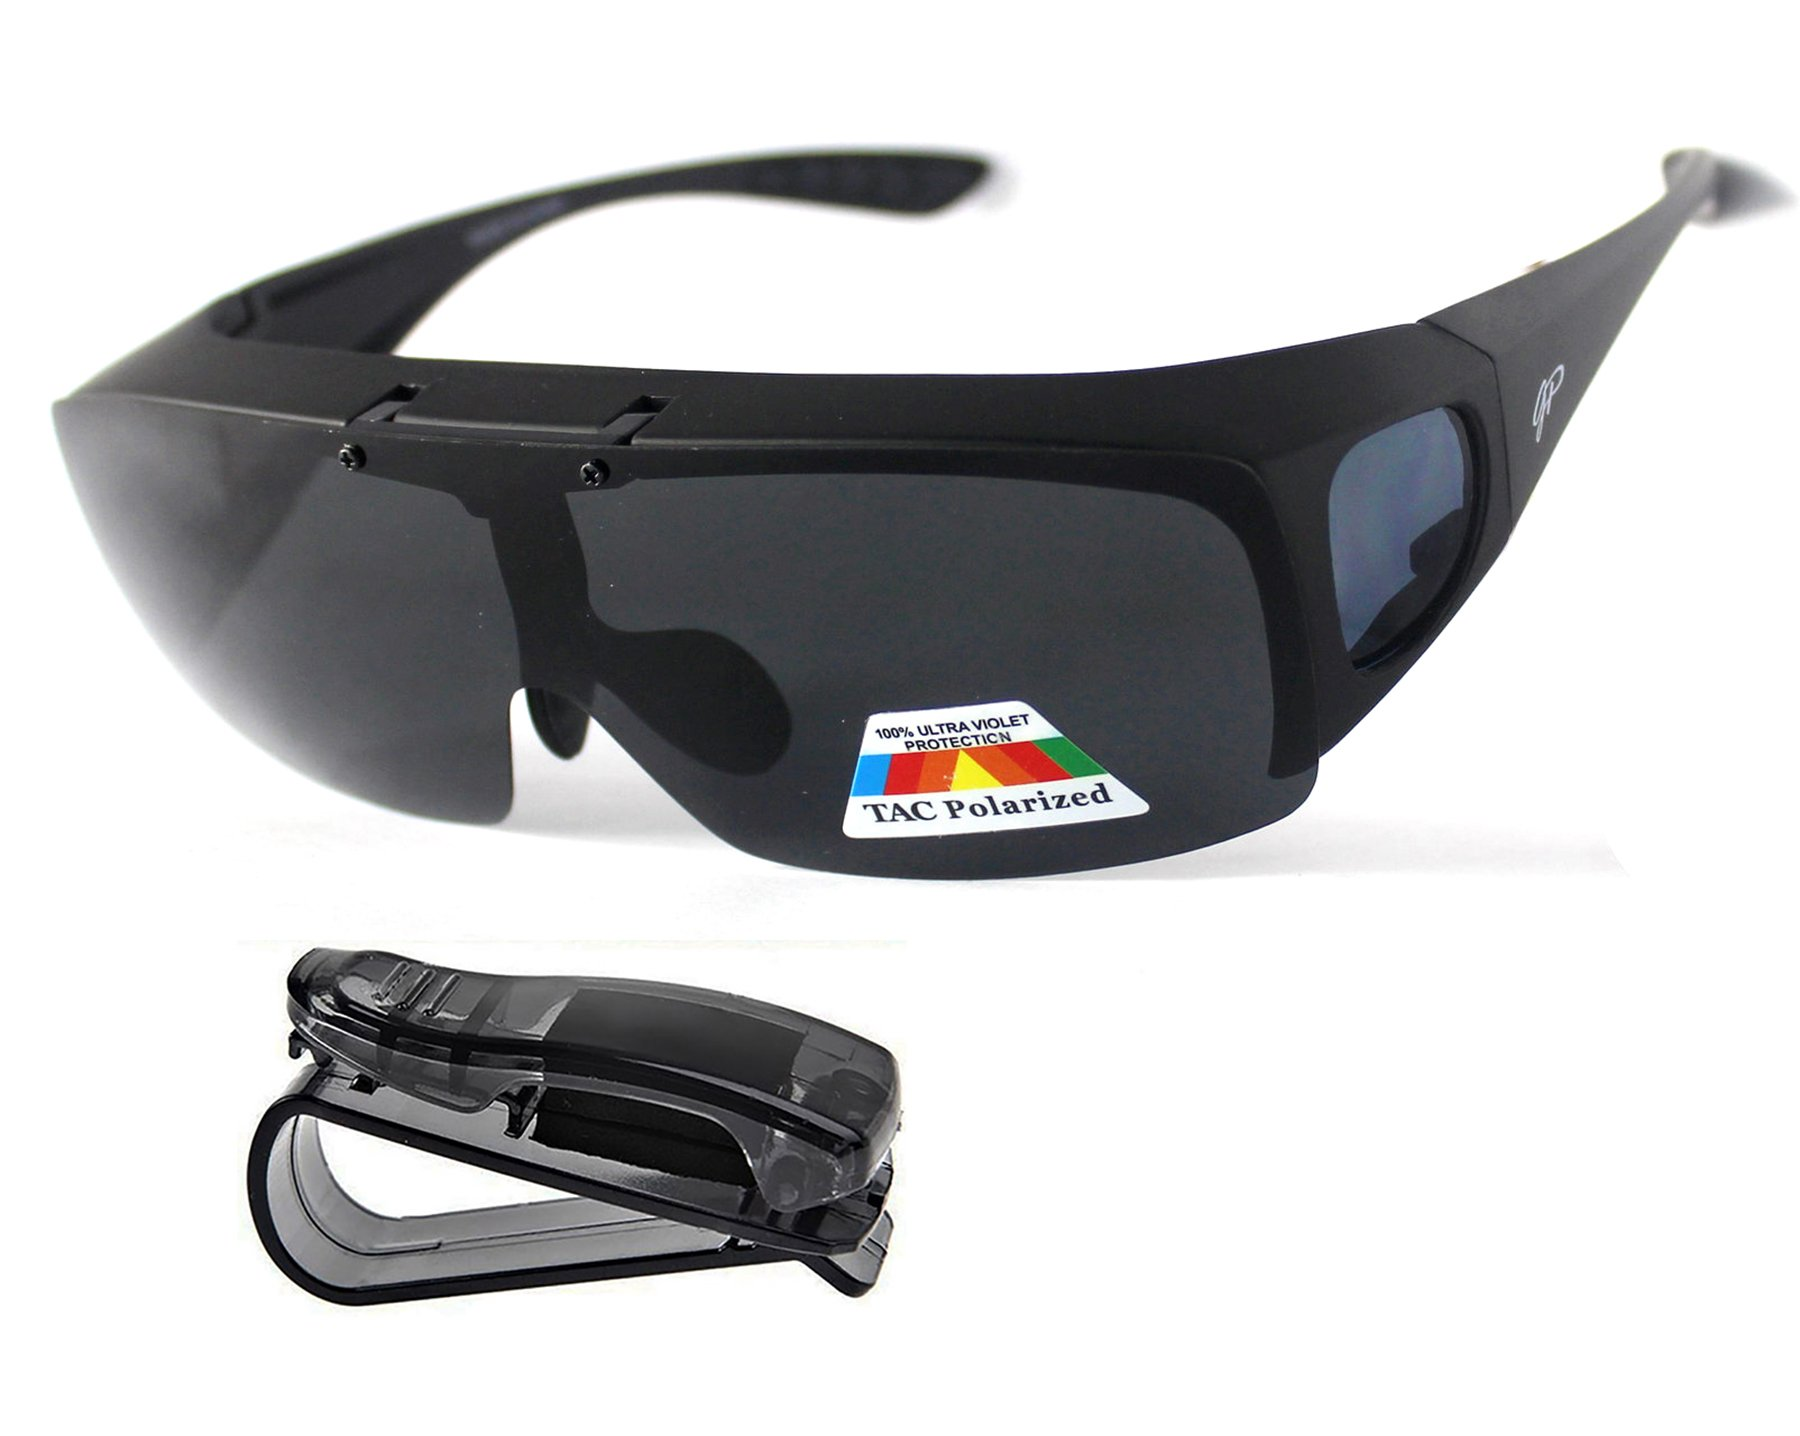 Fit Over Polarized Sunglasses Flip Up Driving Glasses Wear Over Glasses Plus Car Clip Holder